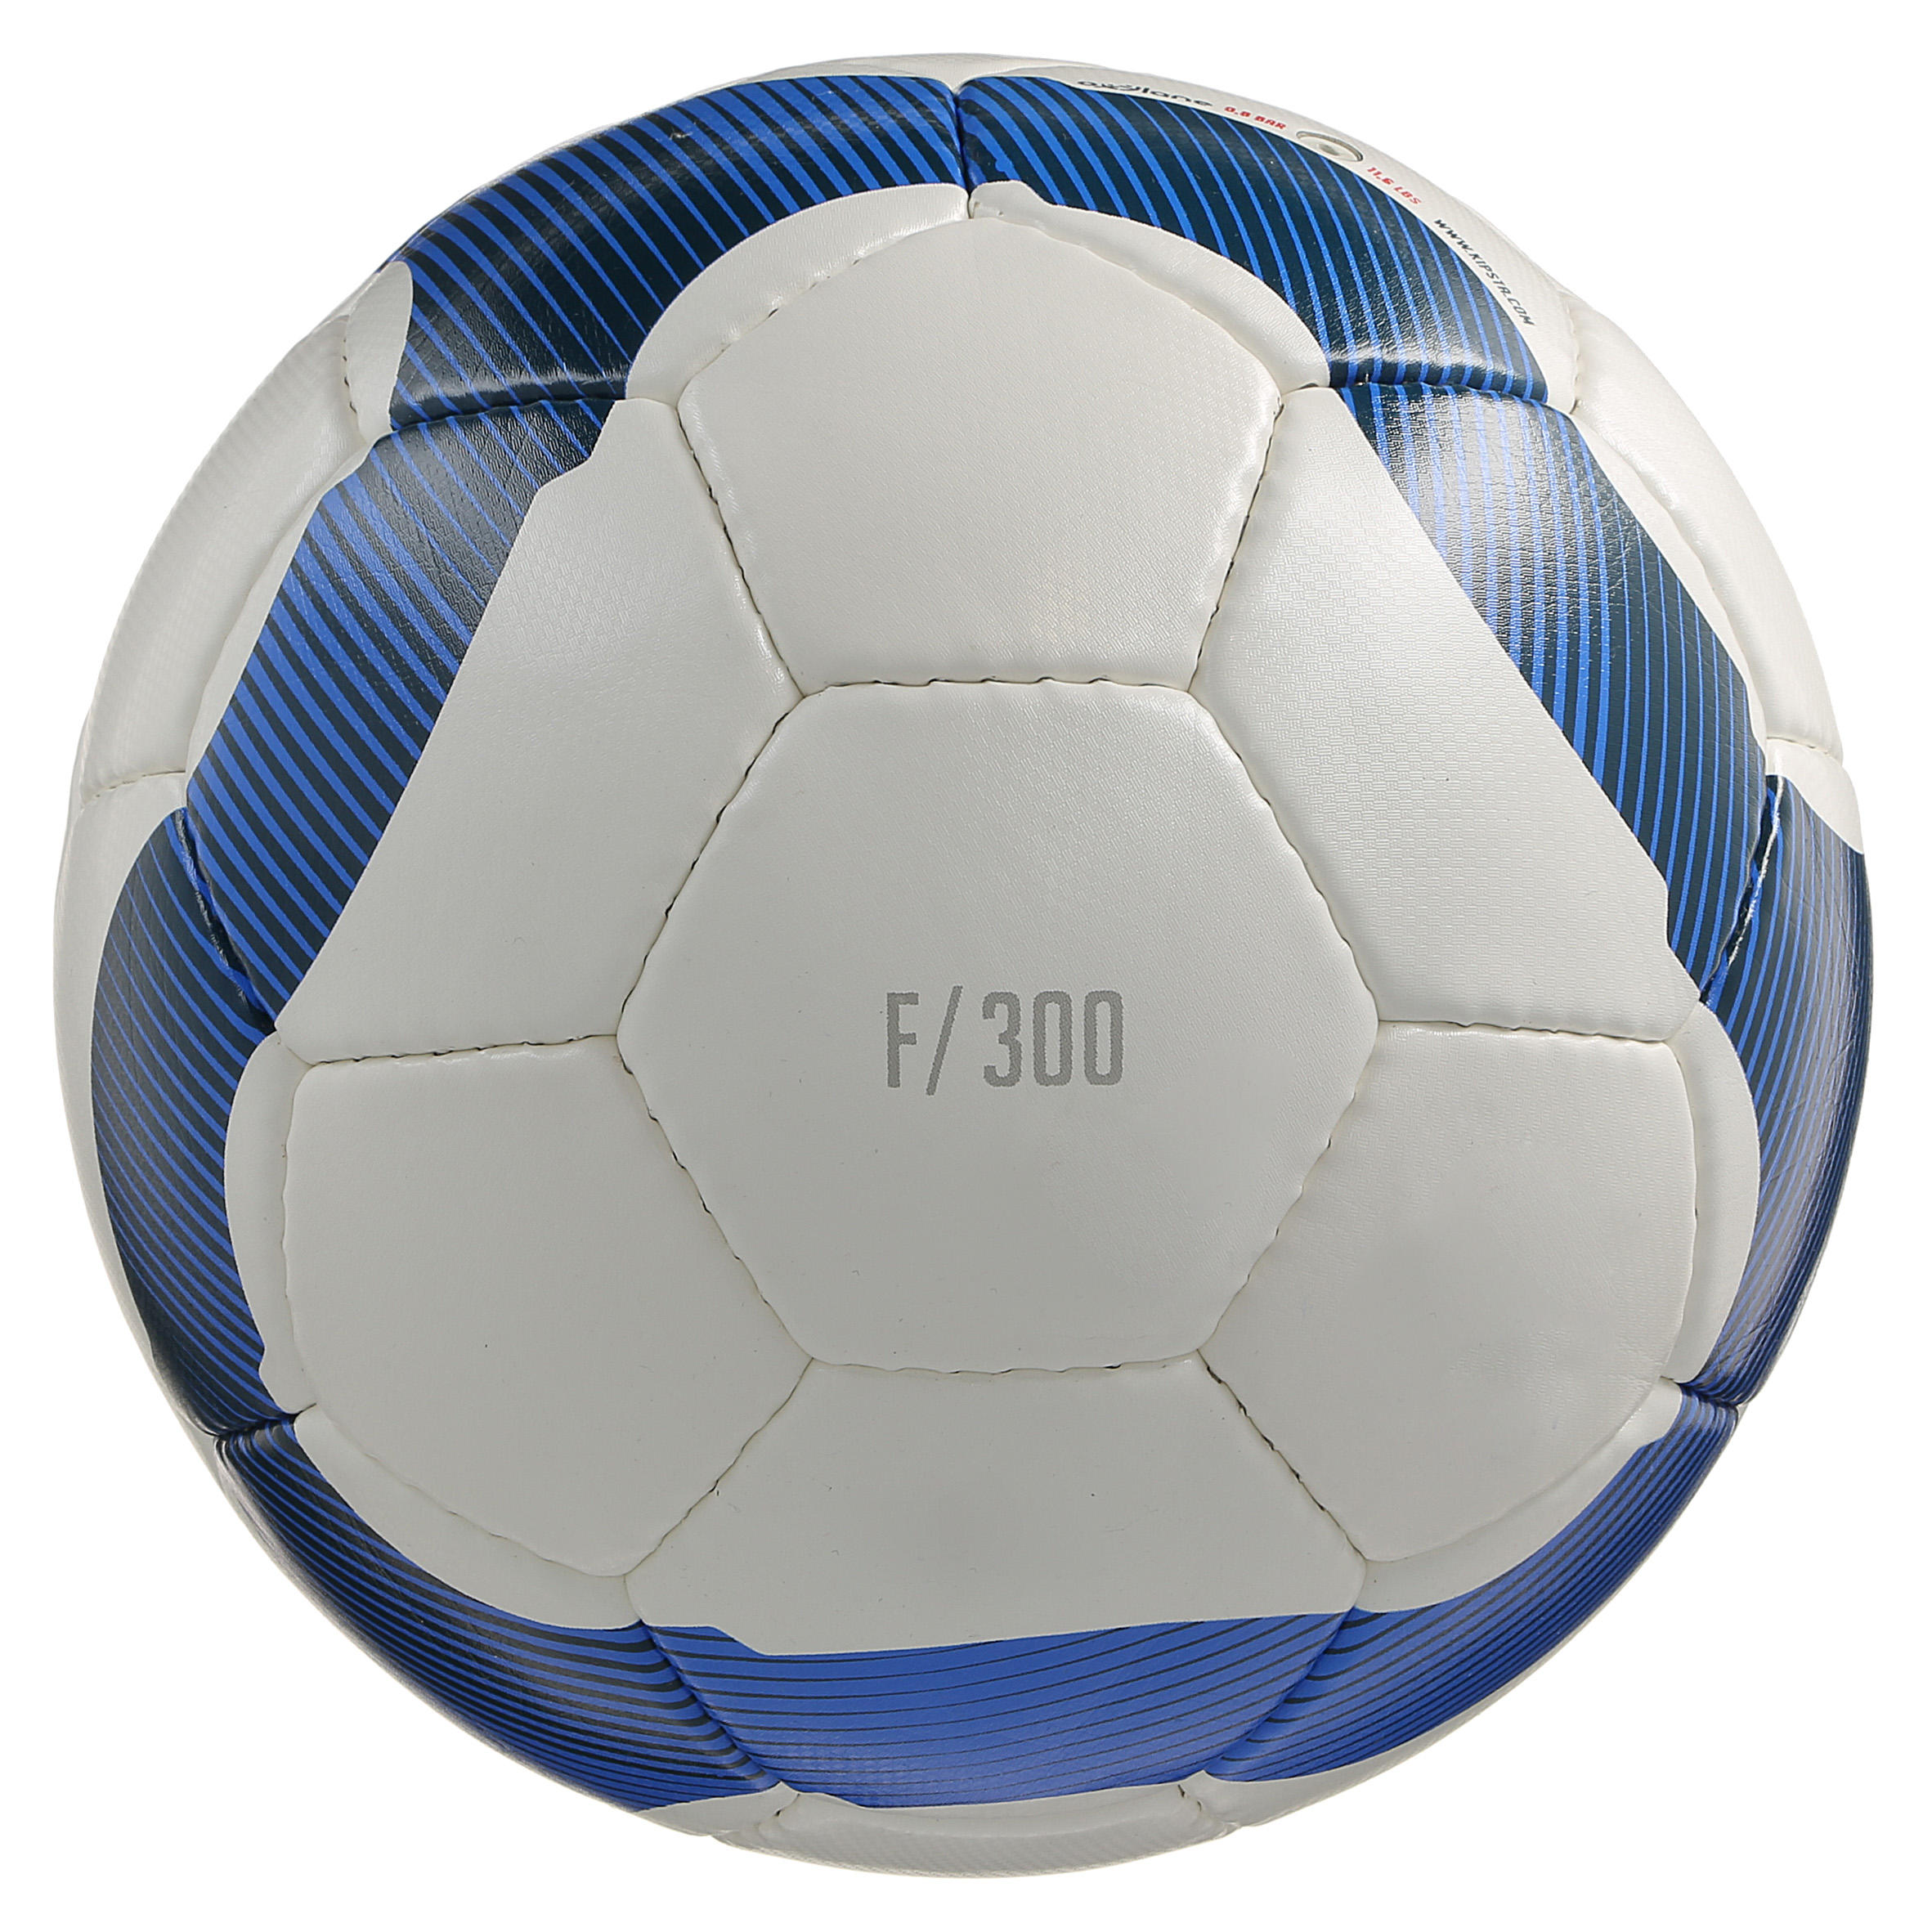 Football Ball Size 5 F300 - White/Blue